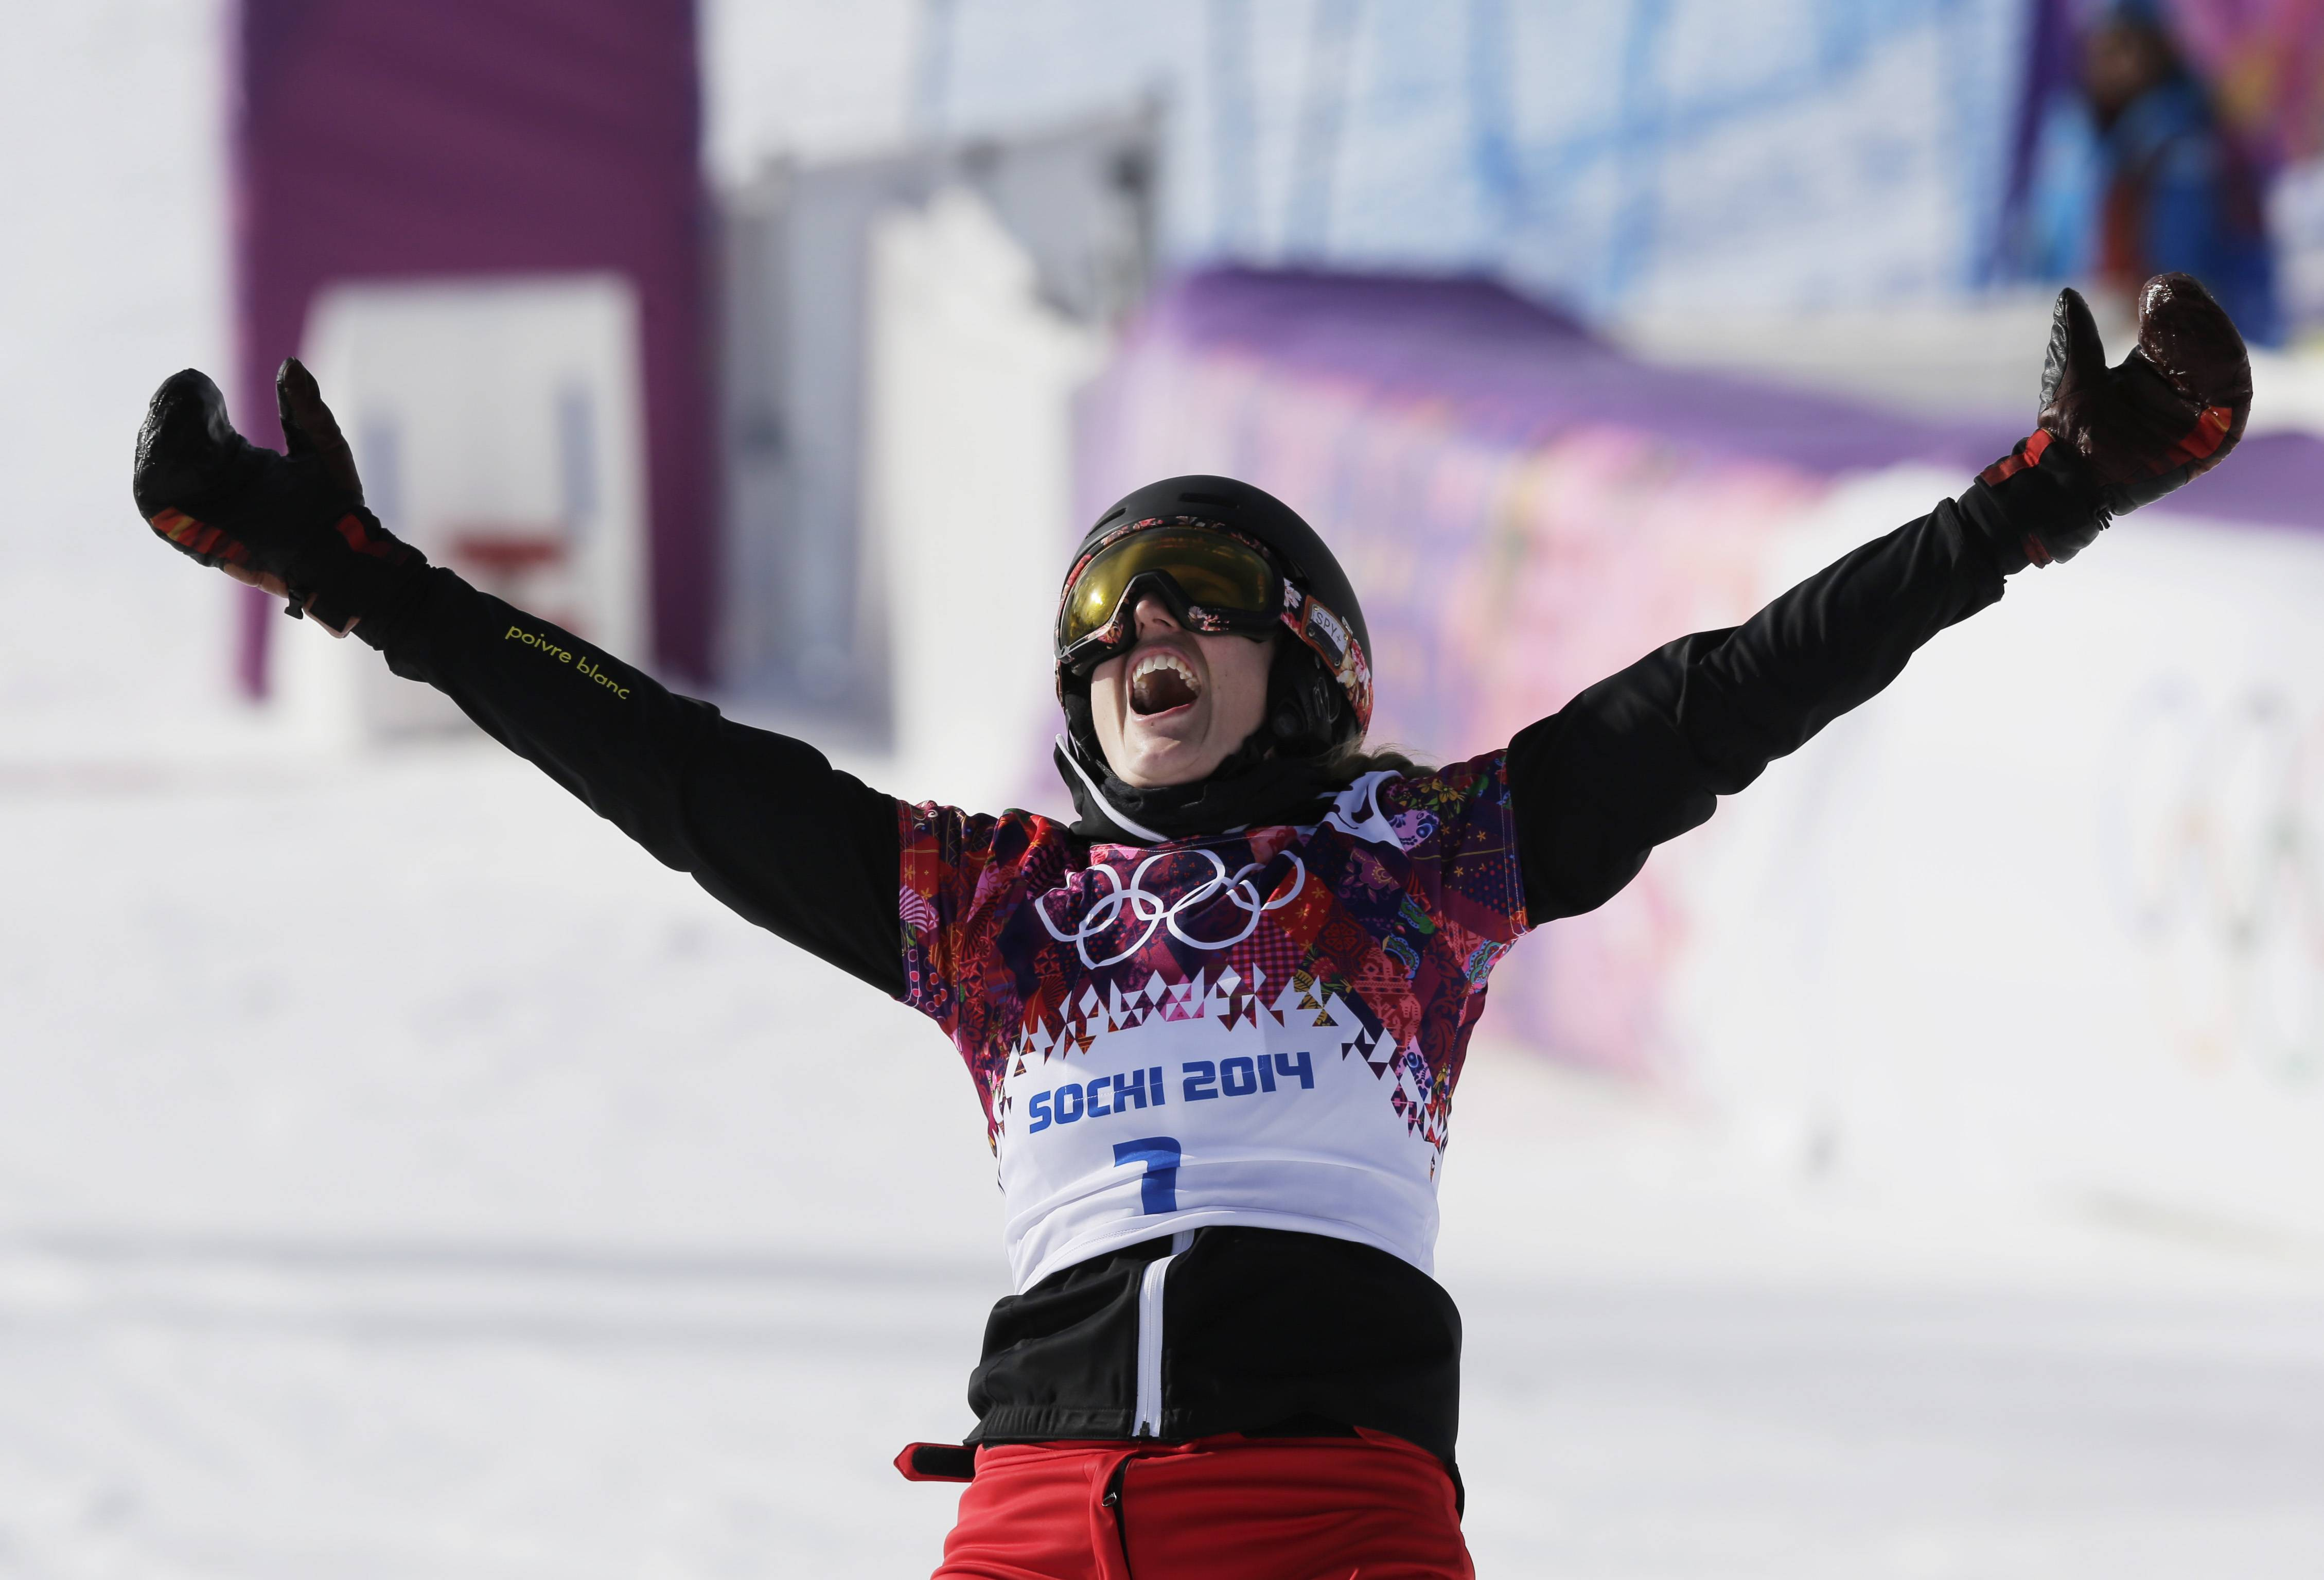 Switzerland's Patrizia Kummer celebrates Wednesday after winning the gold medal in the women's snowboard parallel giant slalom final at the Rosa Khutor Extreme Park during the 2014 Winter Olympics in Krasnaya Polyana, Russia.